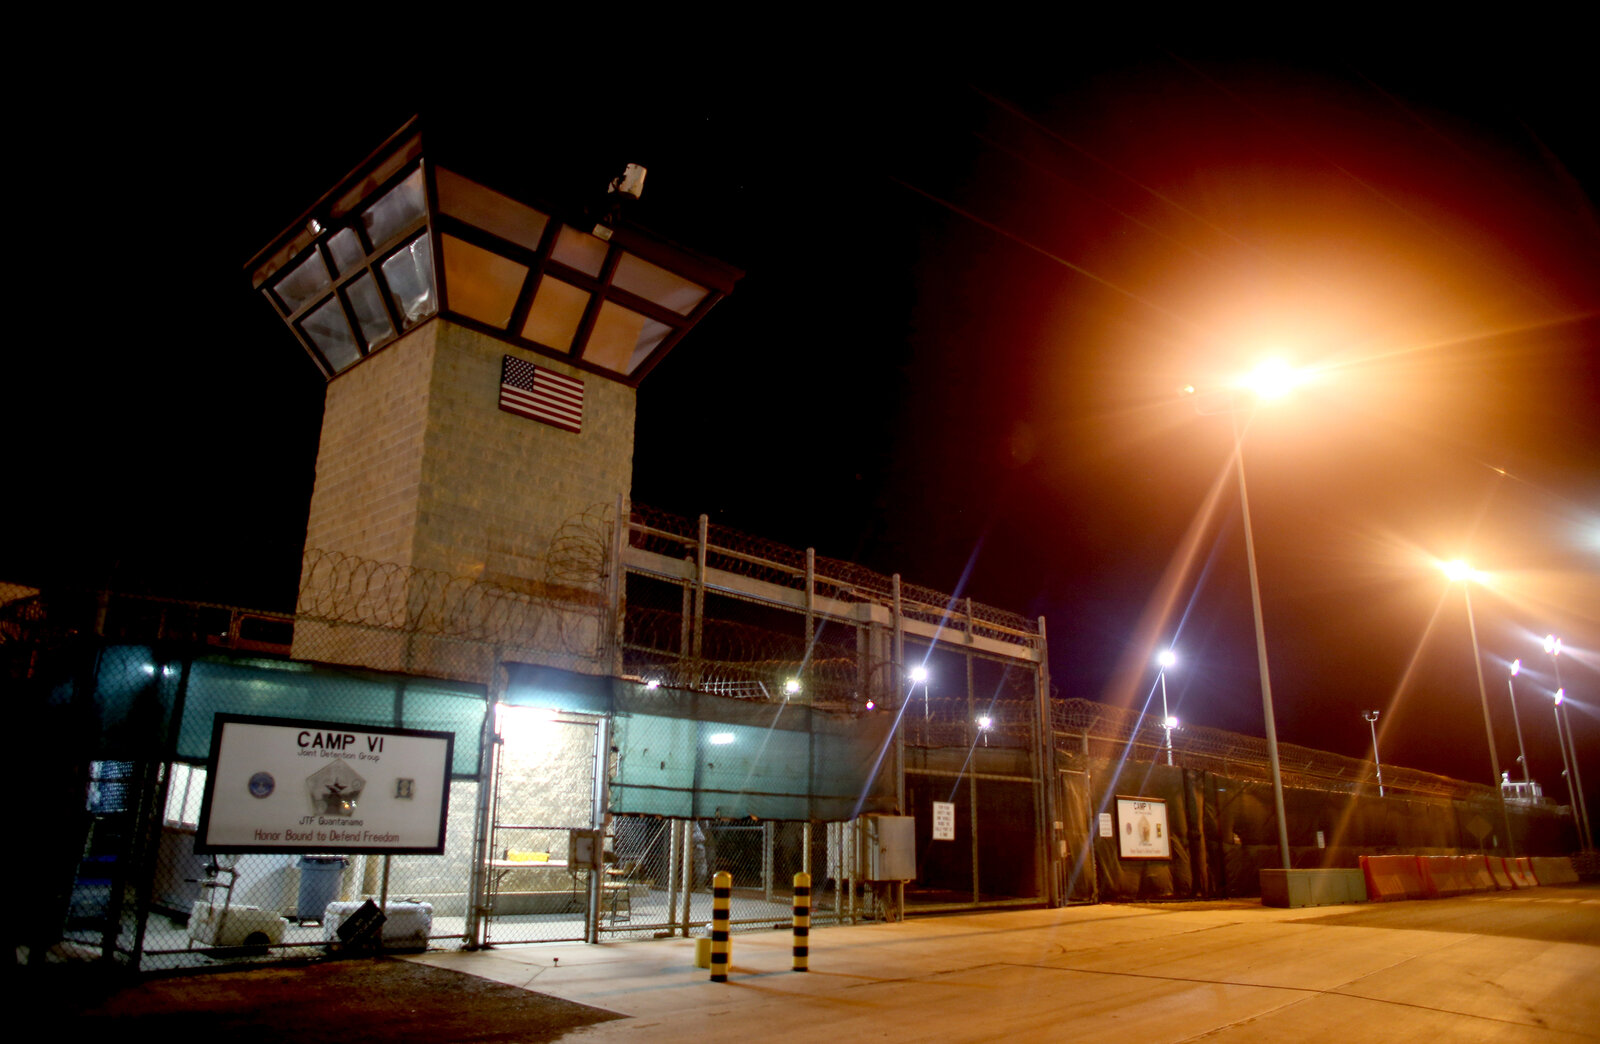 Defense attorneys for terrorism suspects at Guantanamo Bay, Cuba, are now allowed to introduce details regarding their clients' interrogations after the so-called 'torture report' was released by the Senate Intelligence Committee late last year.